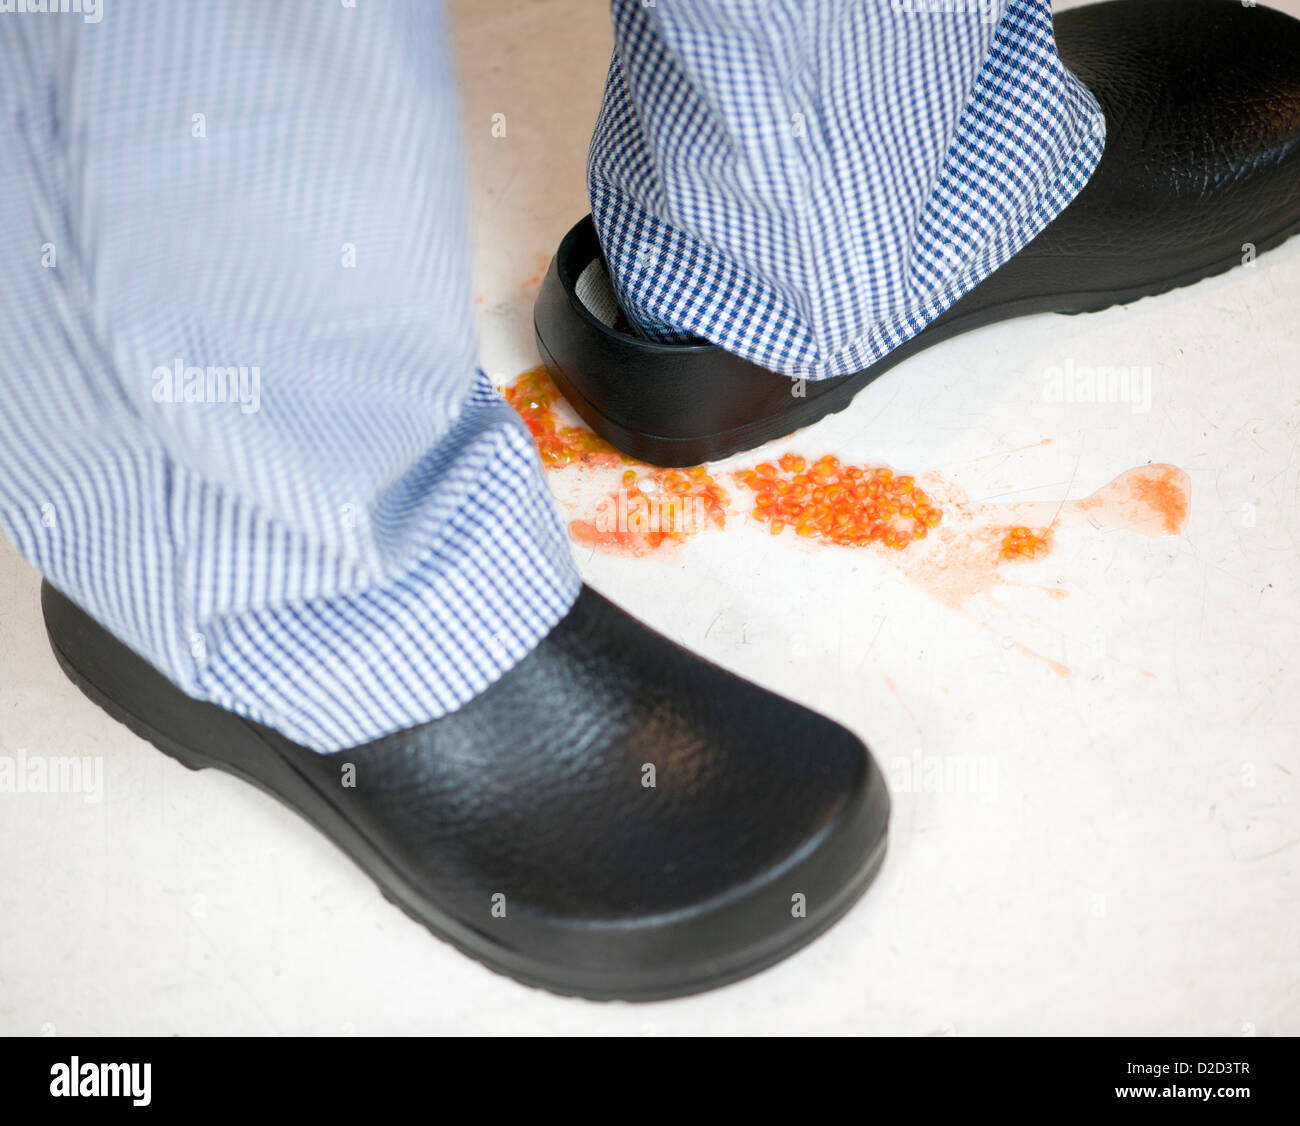 MODEL RELEASED Slip hazard Tomato seeds on a kitchen floor - Stock Image